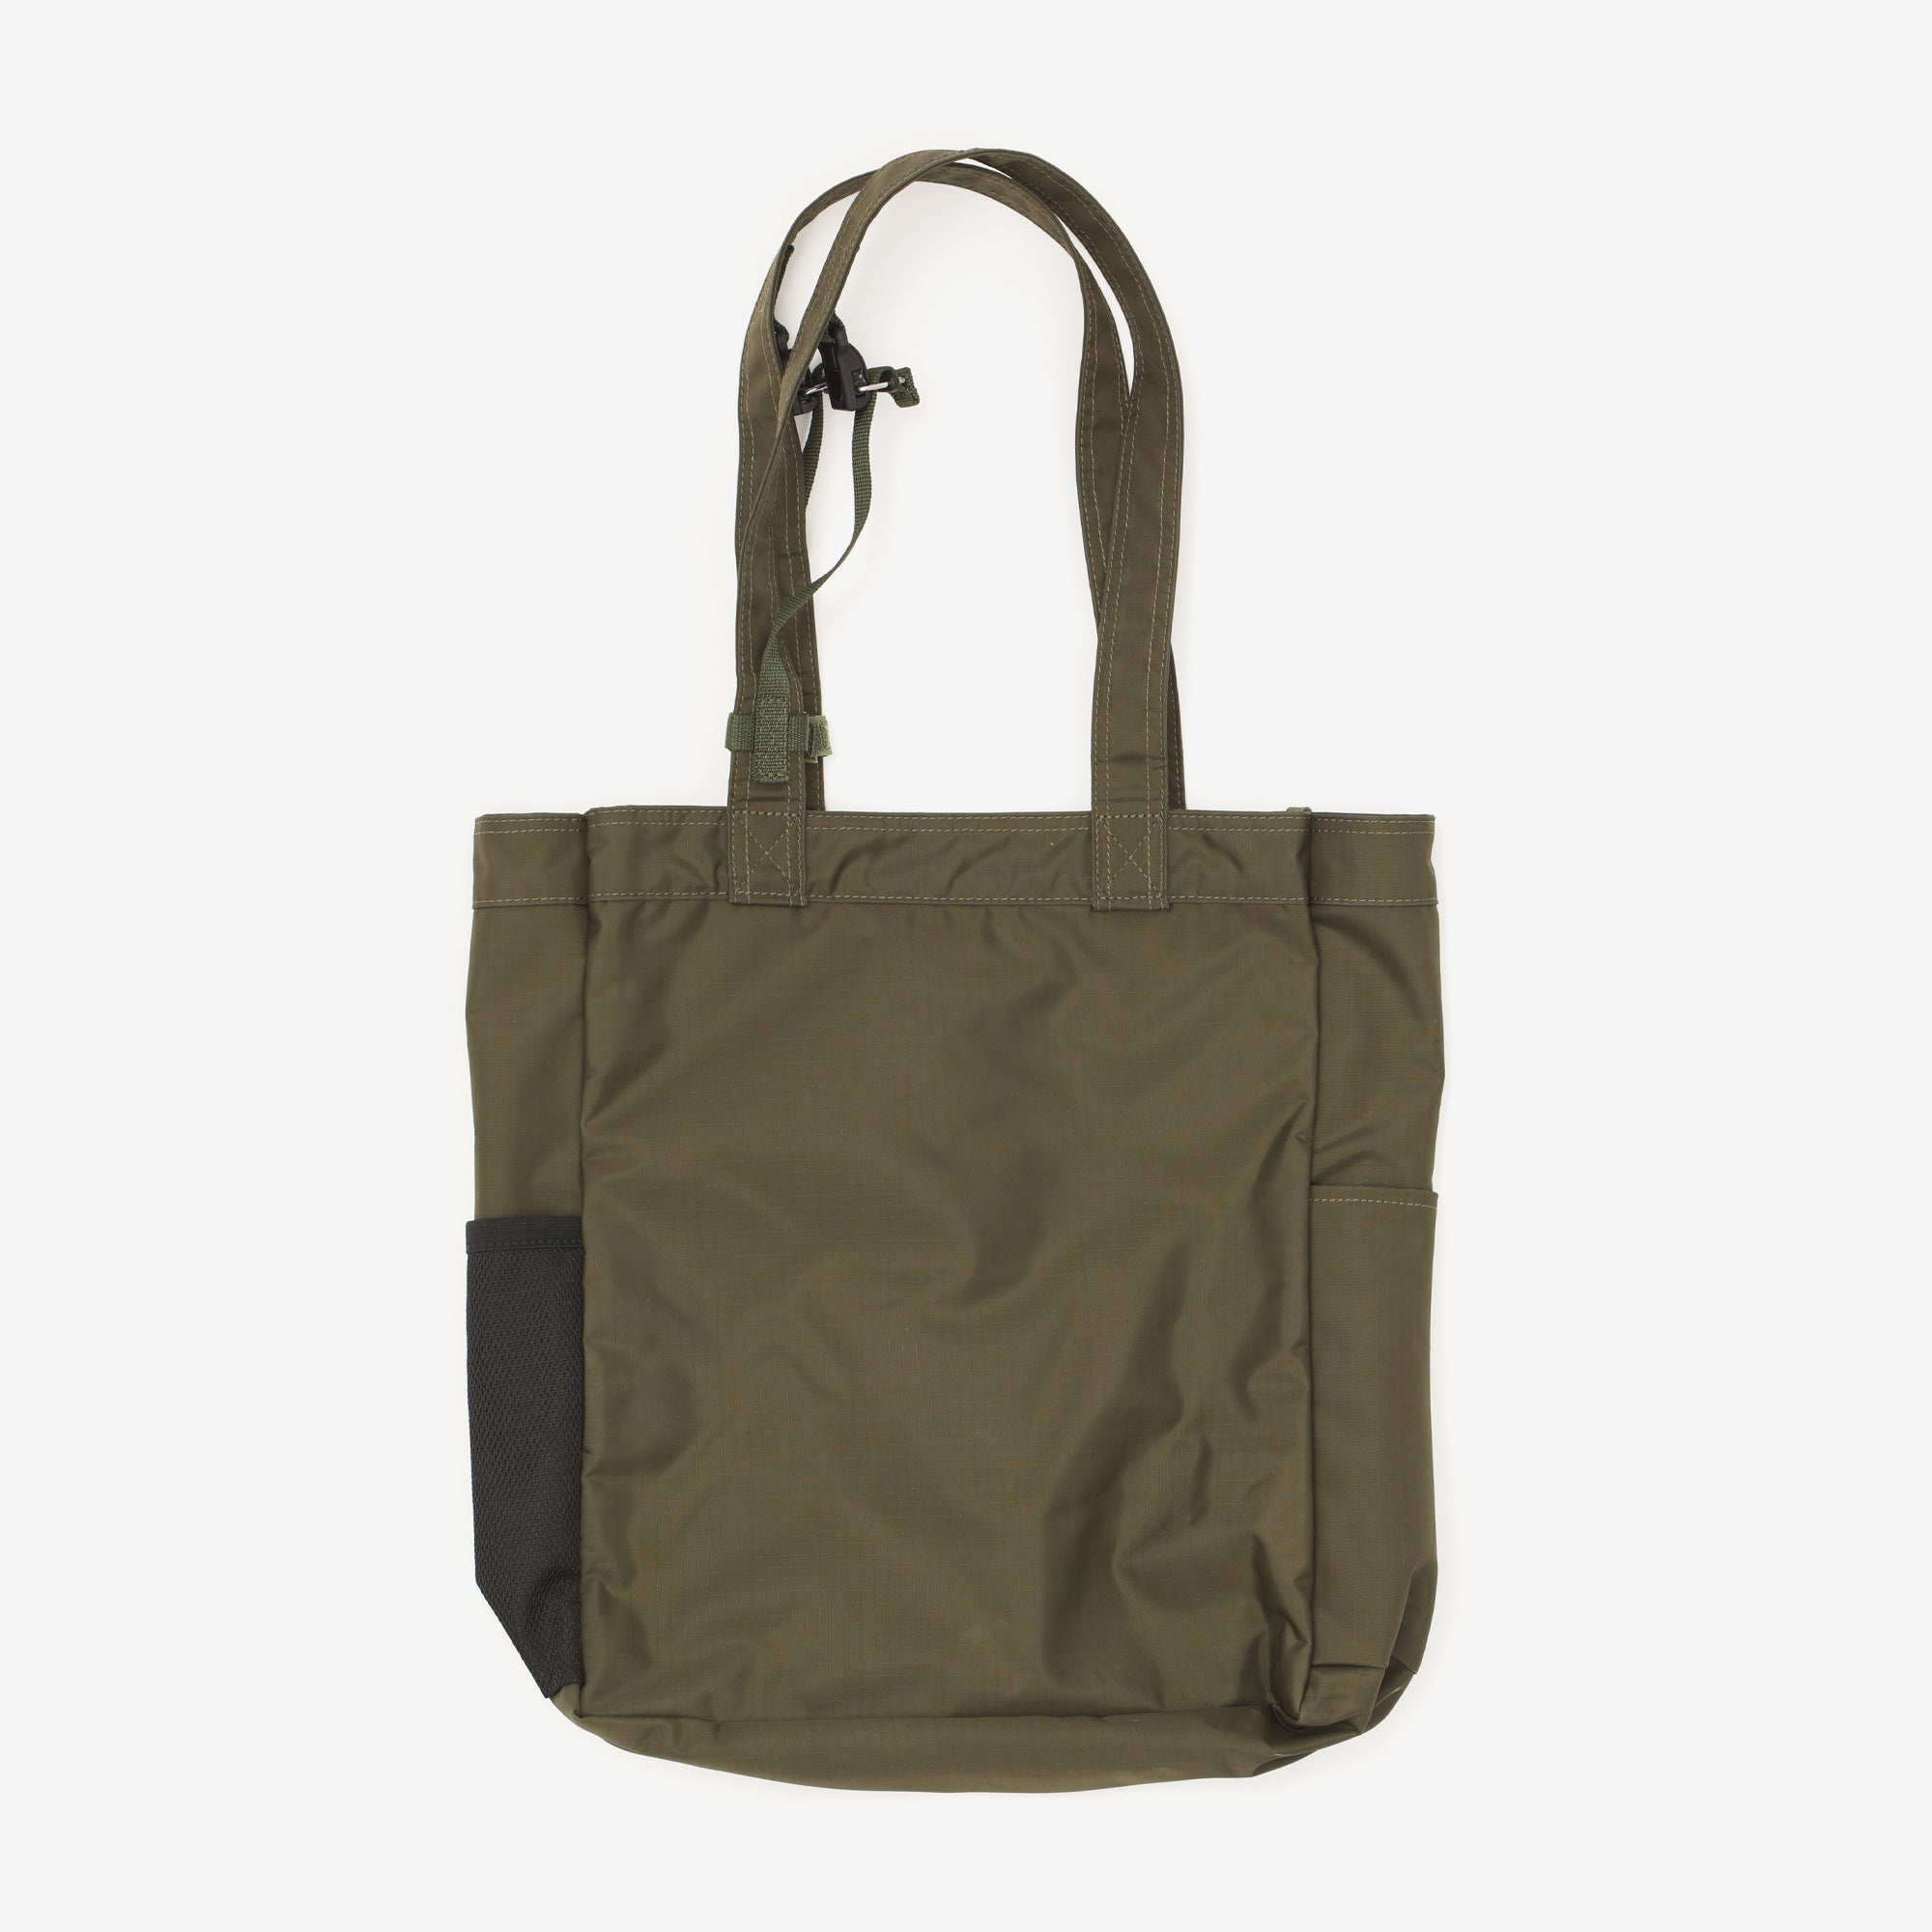 Small Nylon Tote Bag